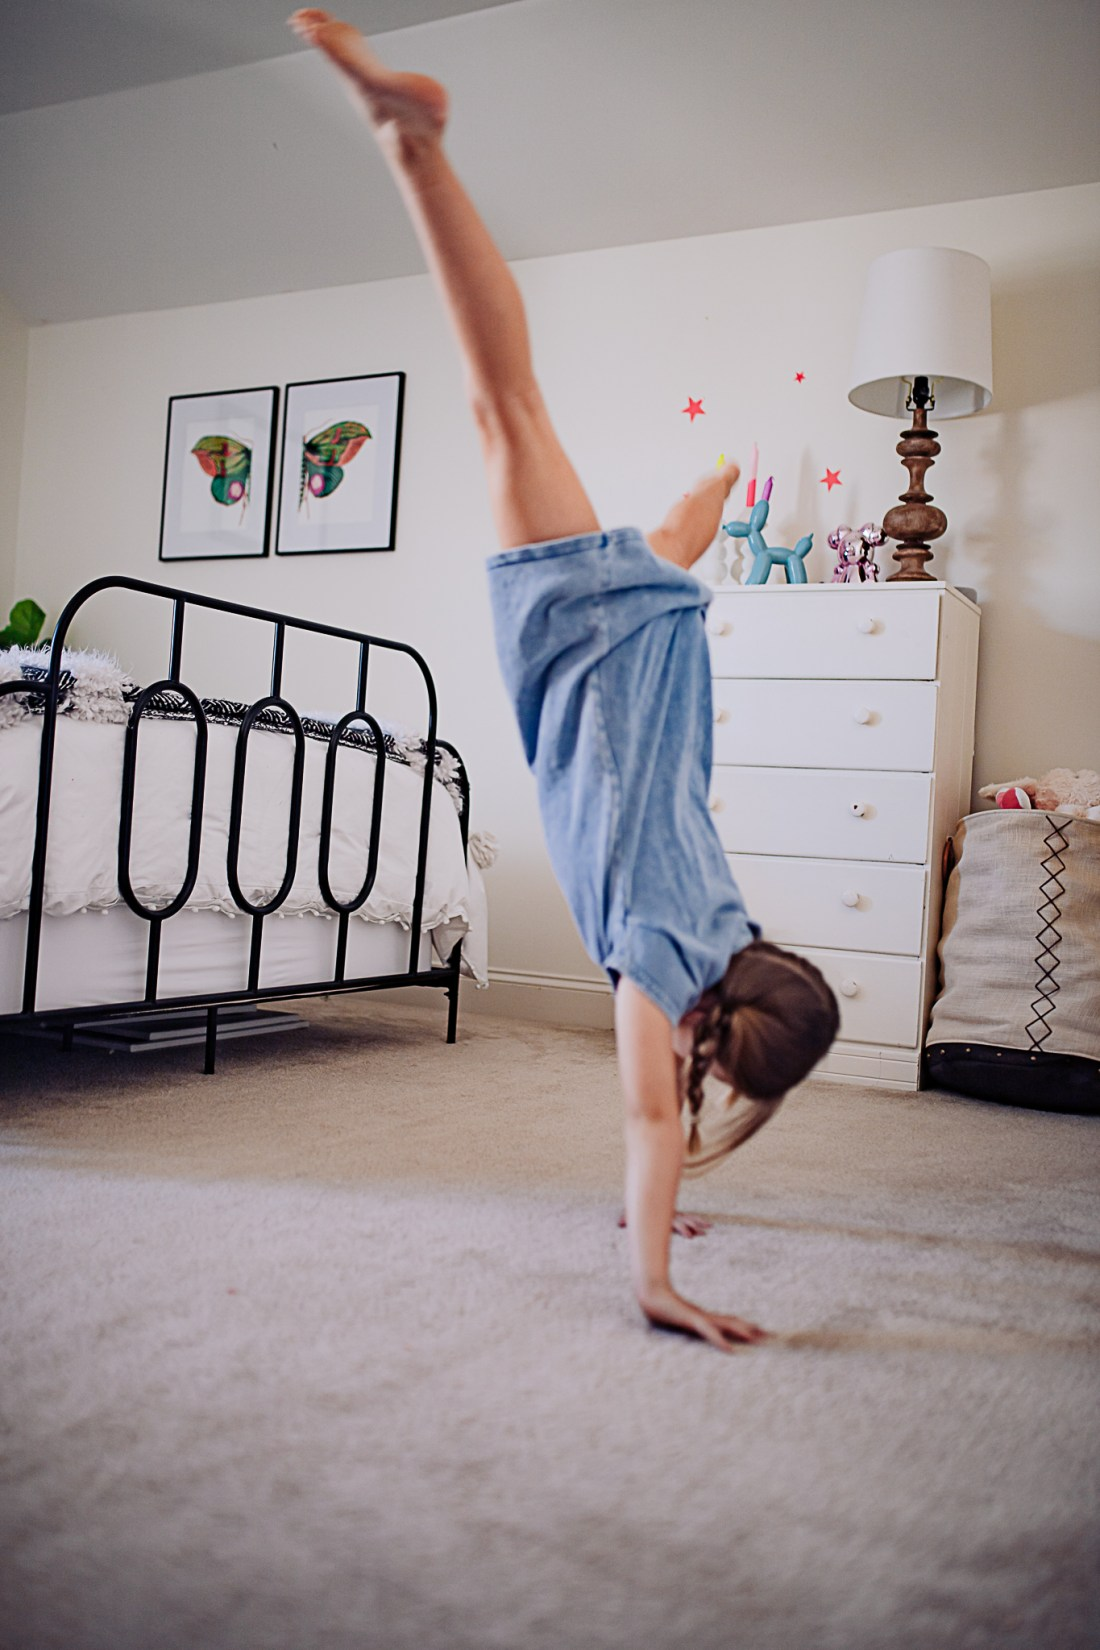 Kids Room by popular Nashville life and style blog, Modern Day Moguls: image of a young girl doing a cartwheel in her room that's decorated with a white dresser, black iron bed frame, and butterfly art prints in black frames.